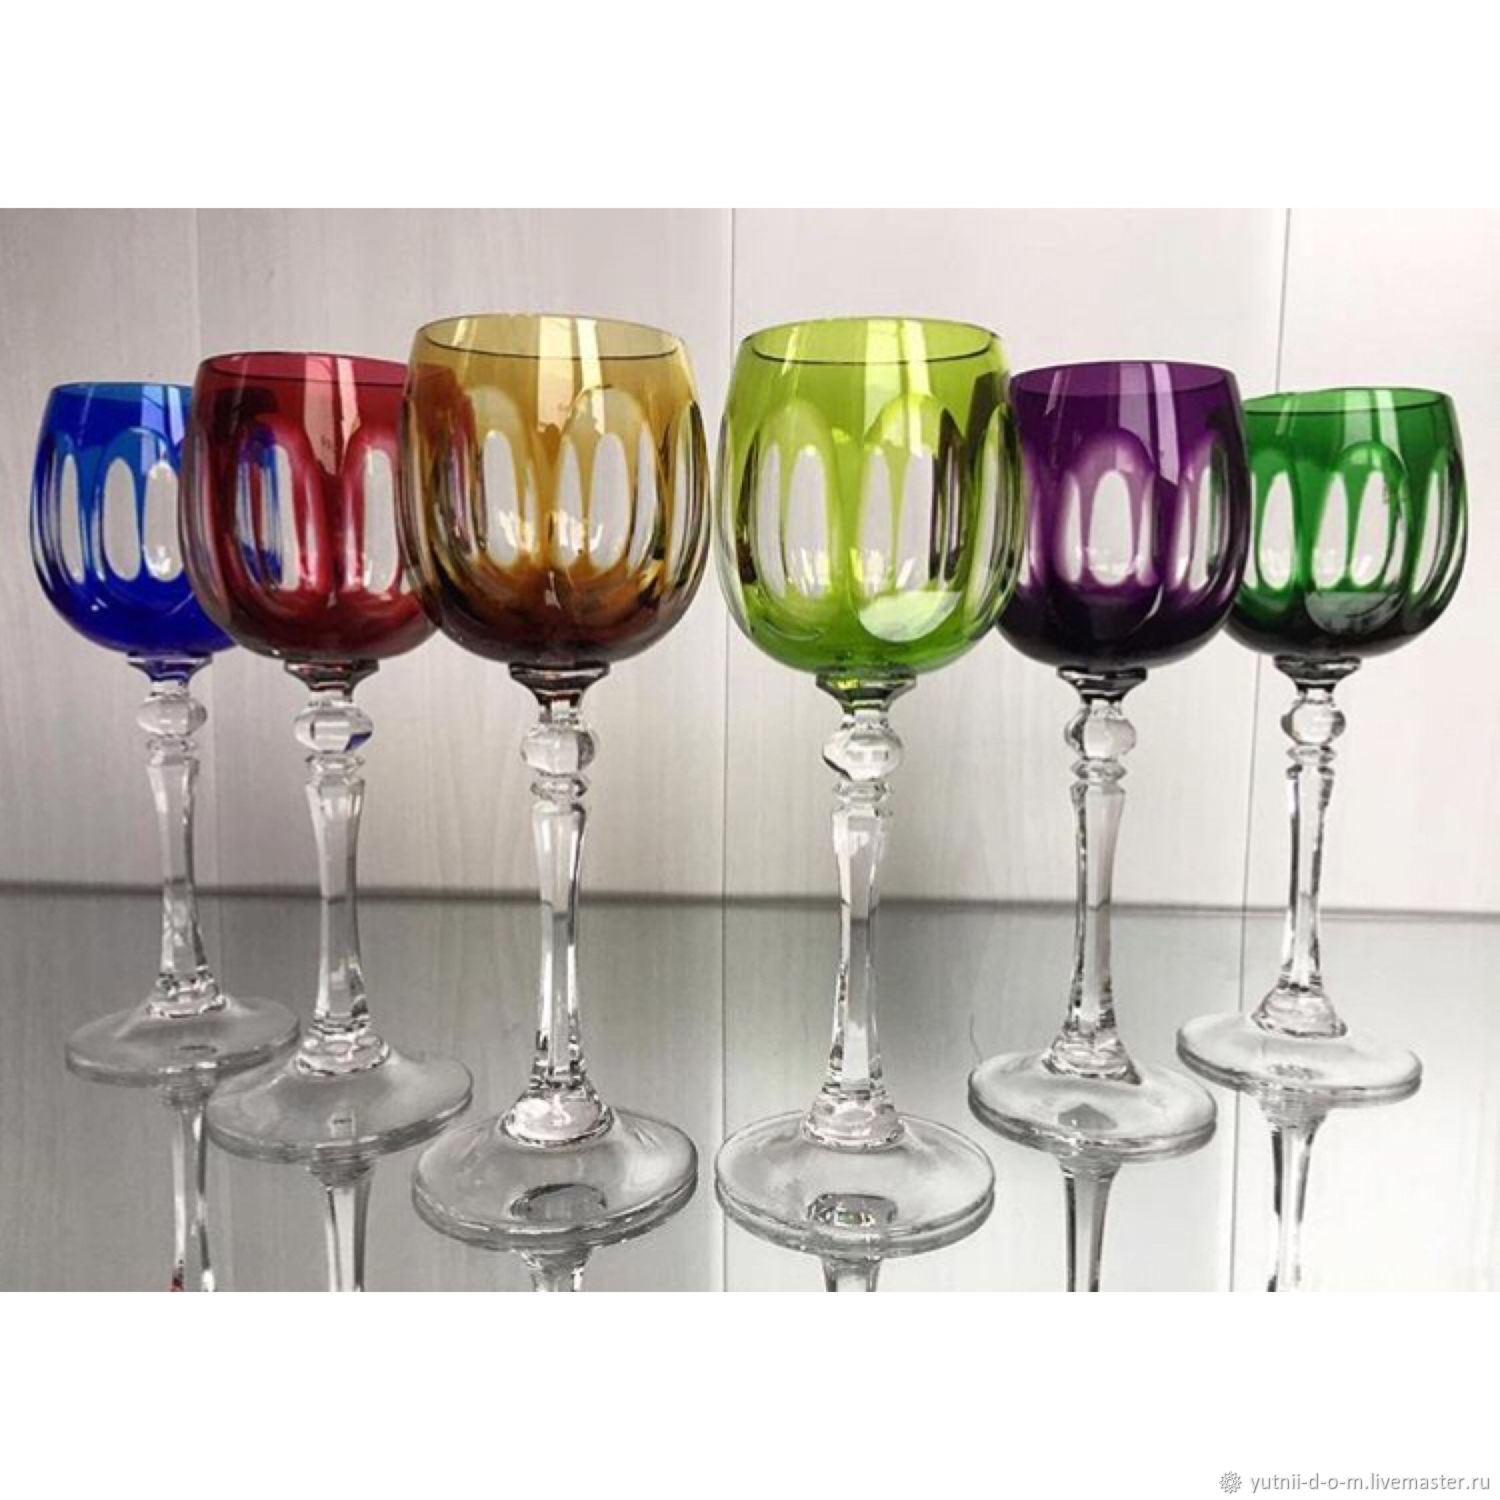 a3080f24d34 Livemaster - handmade. Buy WMF wine Glasses color crystal Germany stamp.